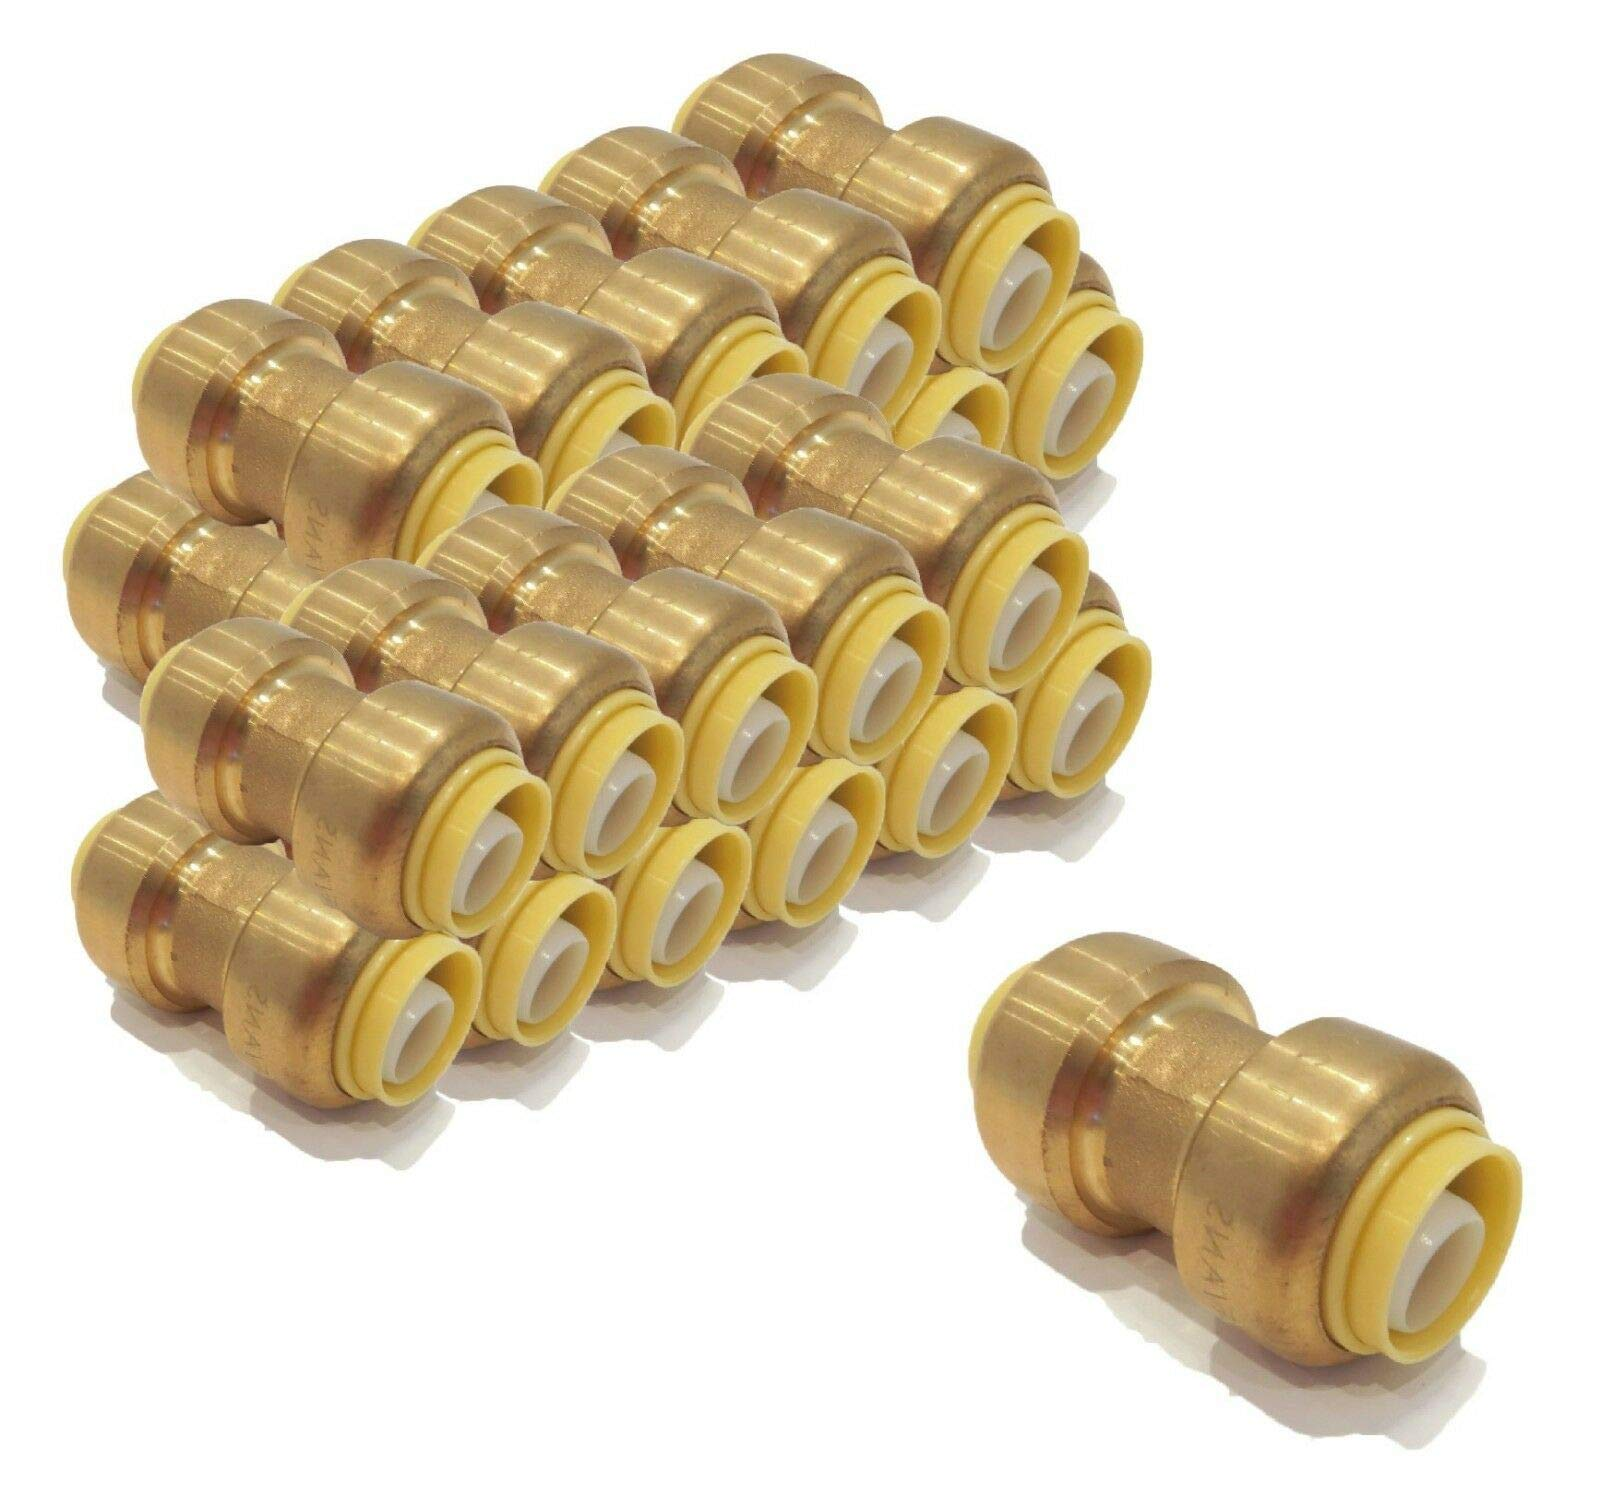 | (Pack of 50) 1/2 inch x 1/2 inch Brass Coupling Fittings replace Watts LF4715-10 by The ROP Shop (Image #1)